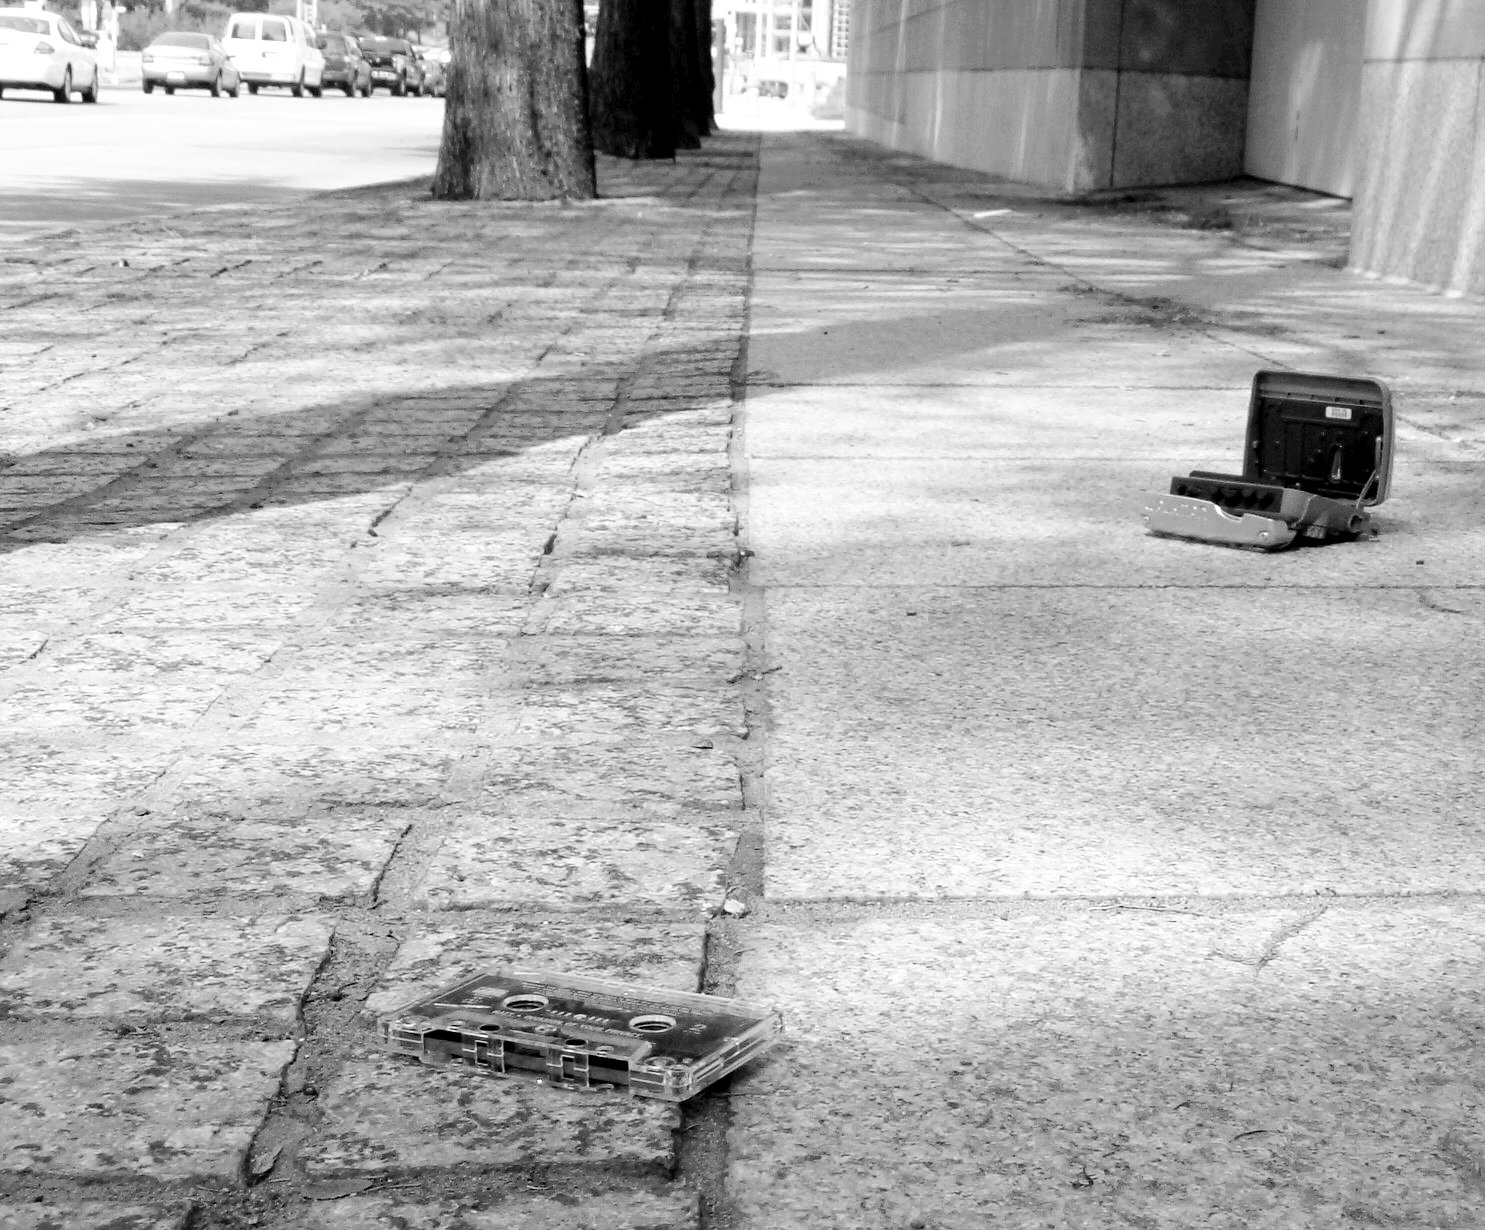 10012 Tape and tape player on sidewalk